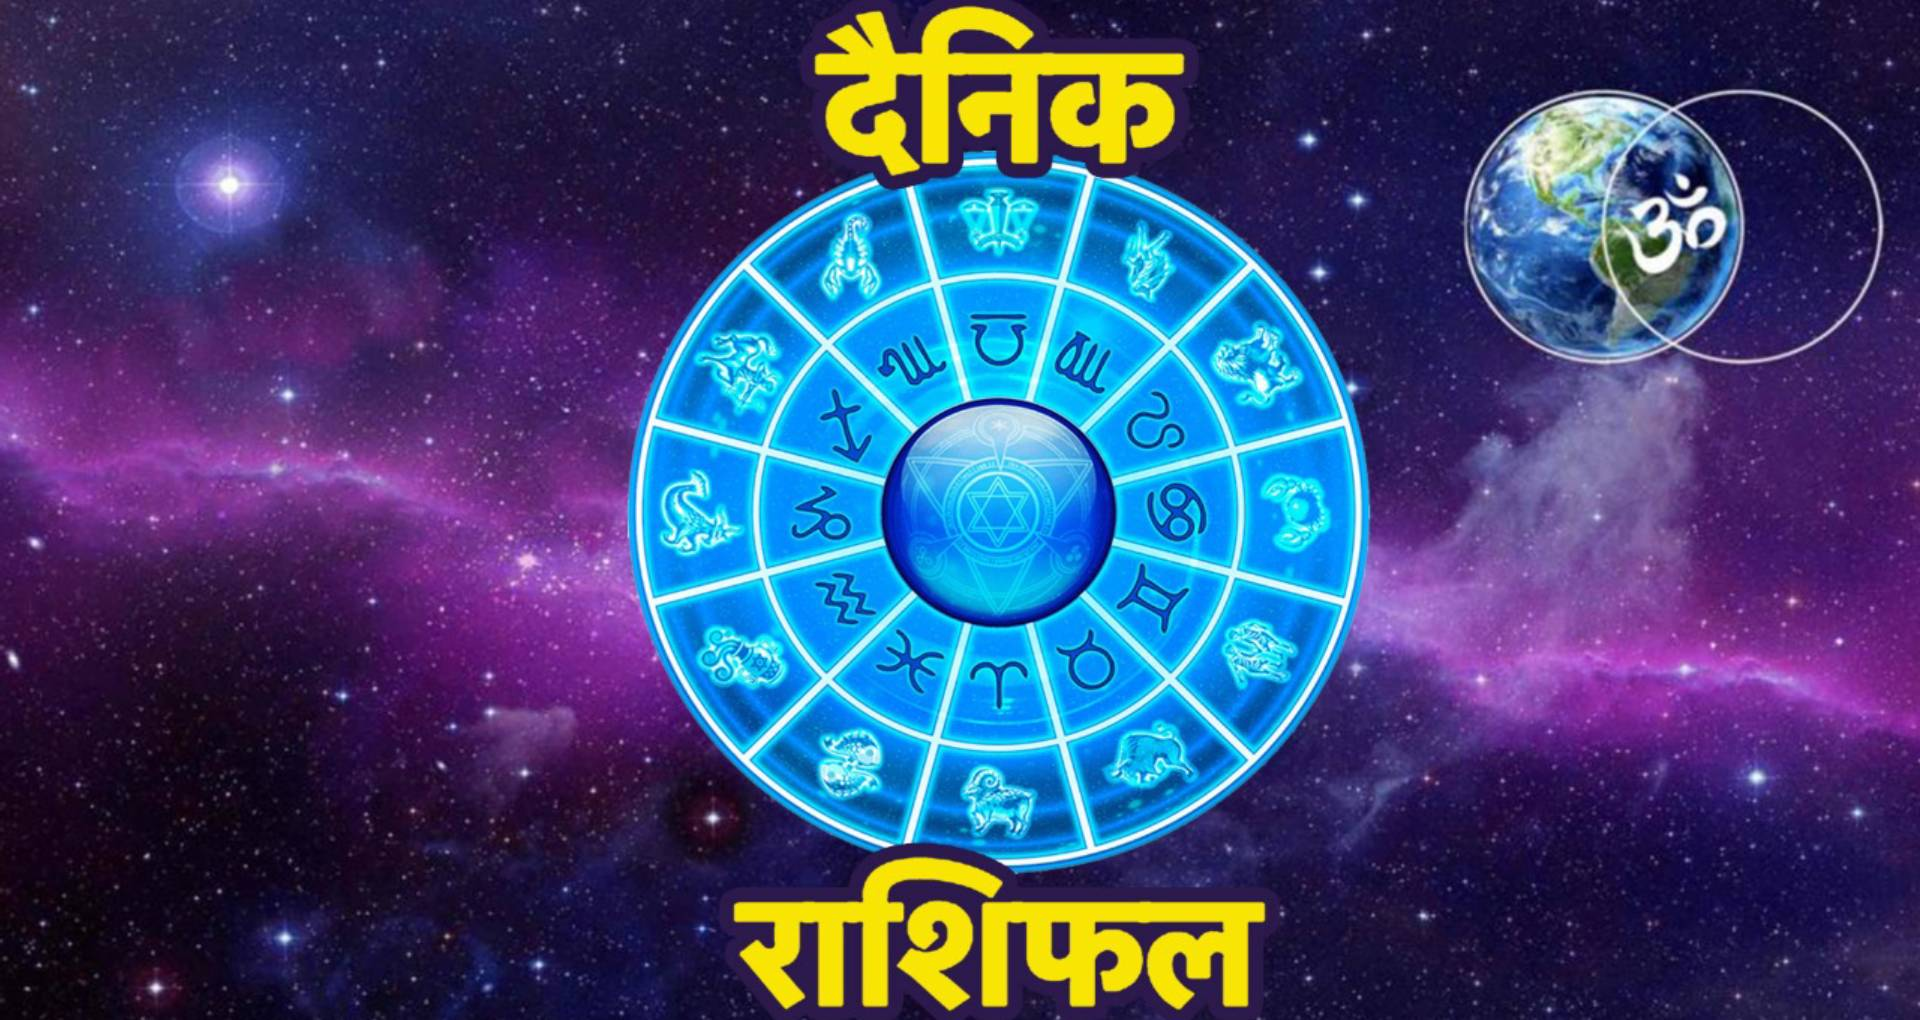 Daily Horoscope 29 June 2019 Taurus Libra Cancer Capricorn